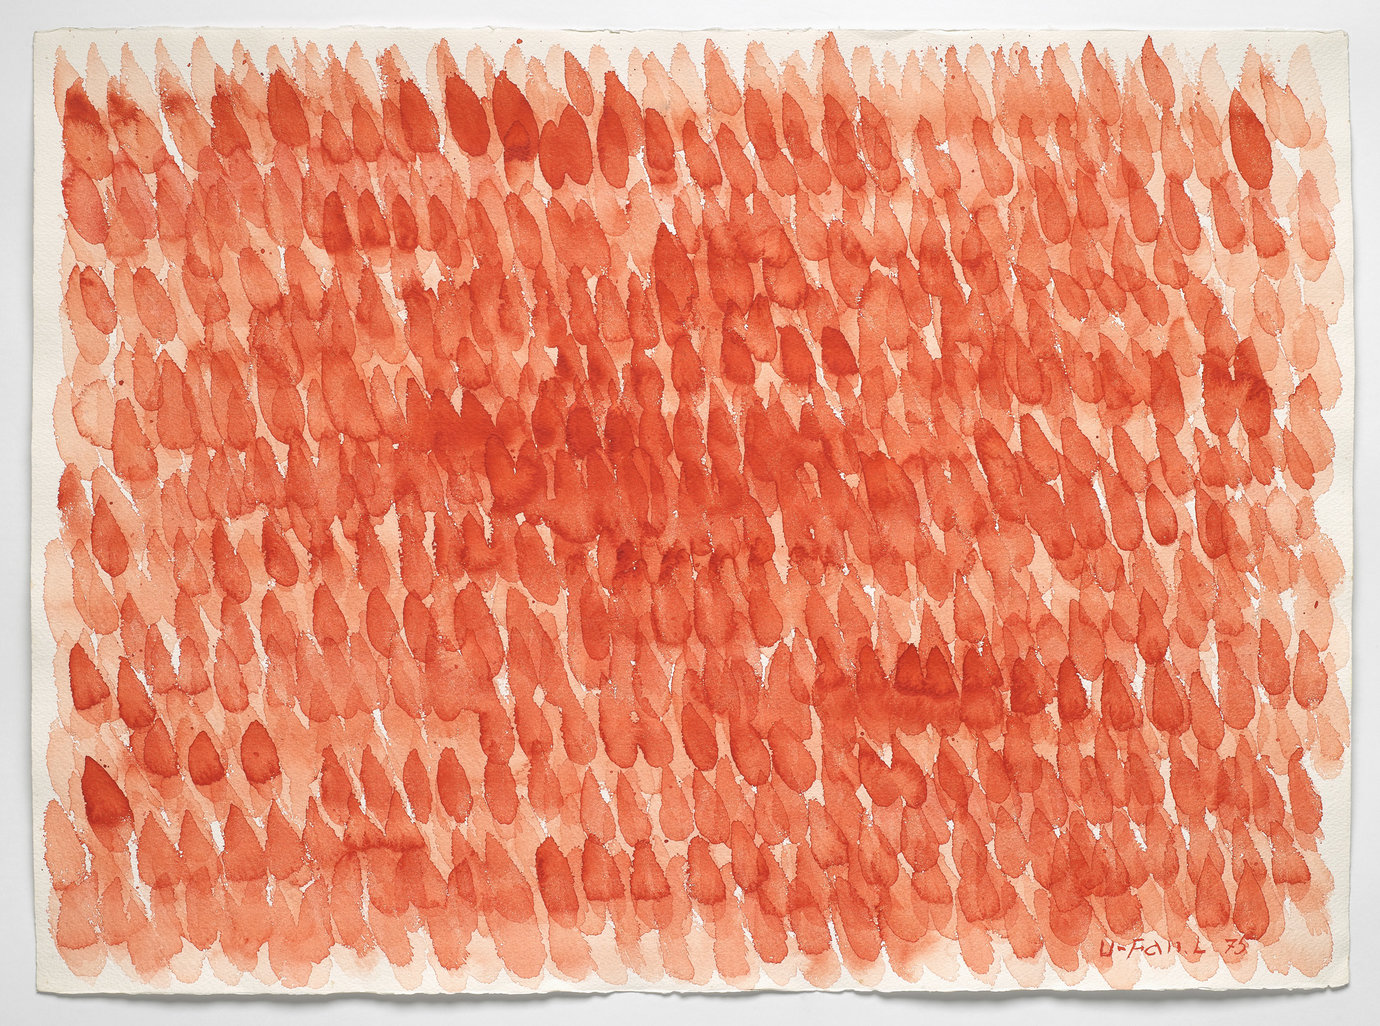 ", 1975. Watercolor on paper, 22-5/8"" x 30-1/8"" (57.5 cm x 76.5 cm)."